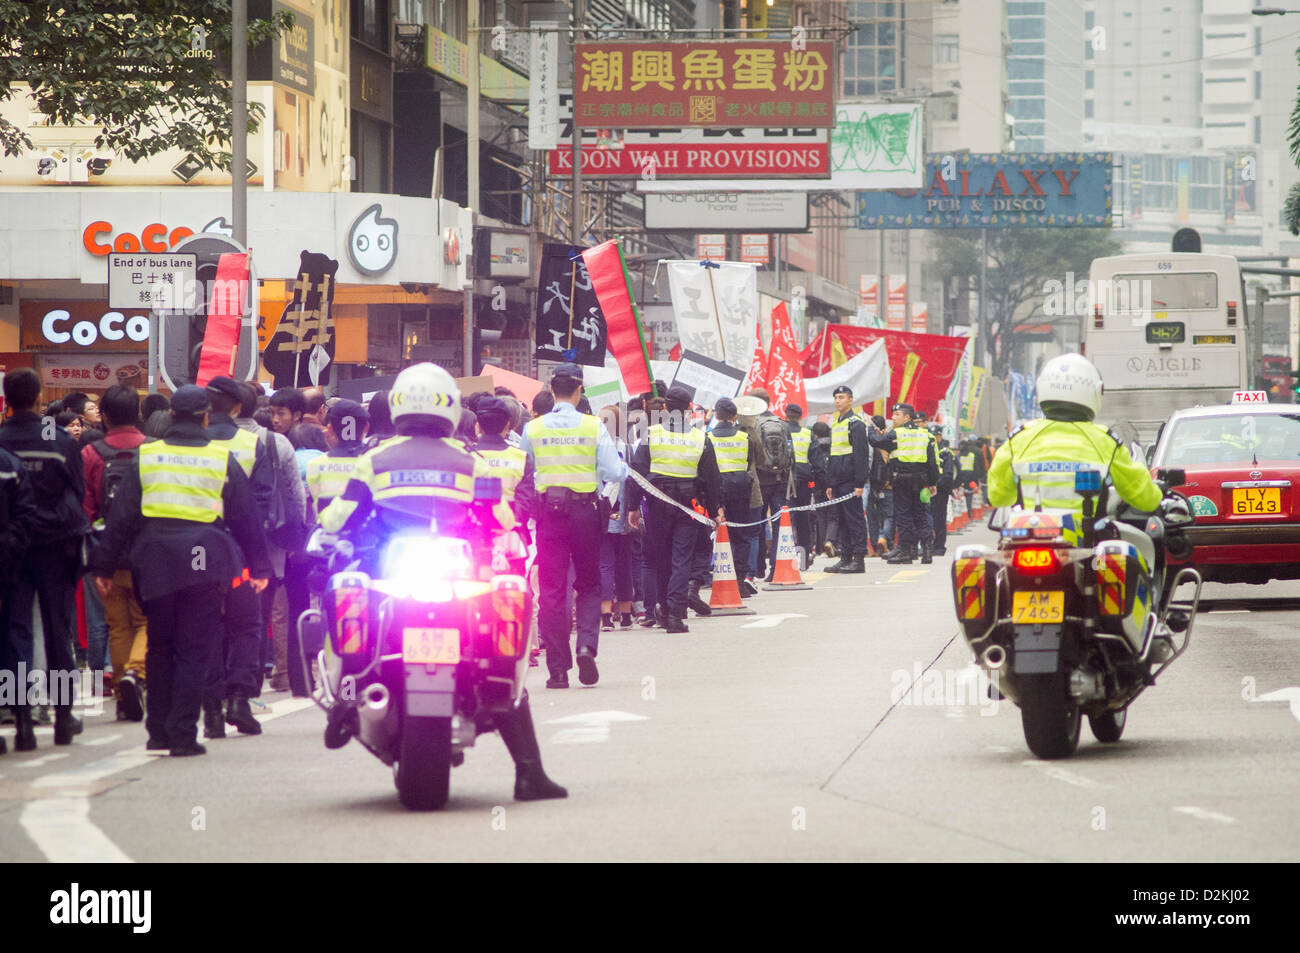 People gather for march to protest against the city leader on Sunday, 27 Jan 2013. Hong Kong, China. Stock Photo